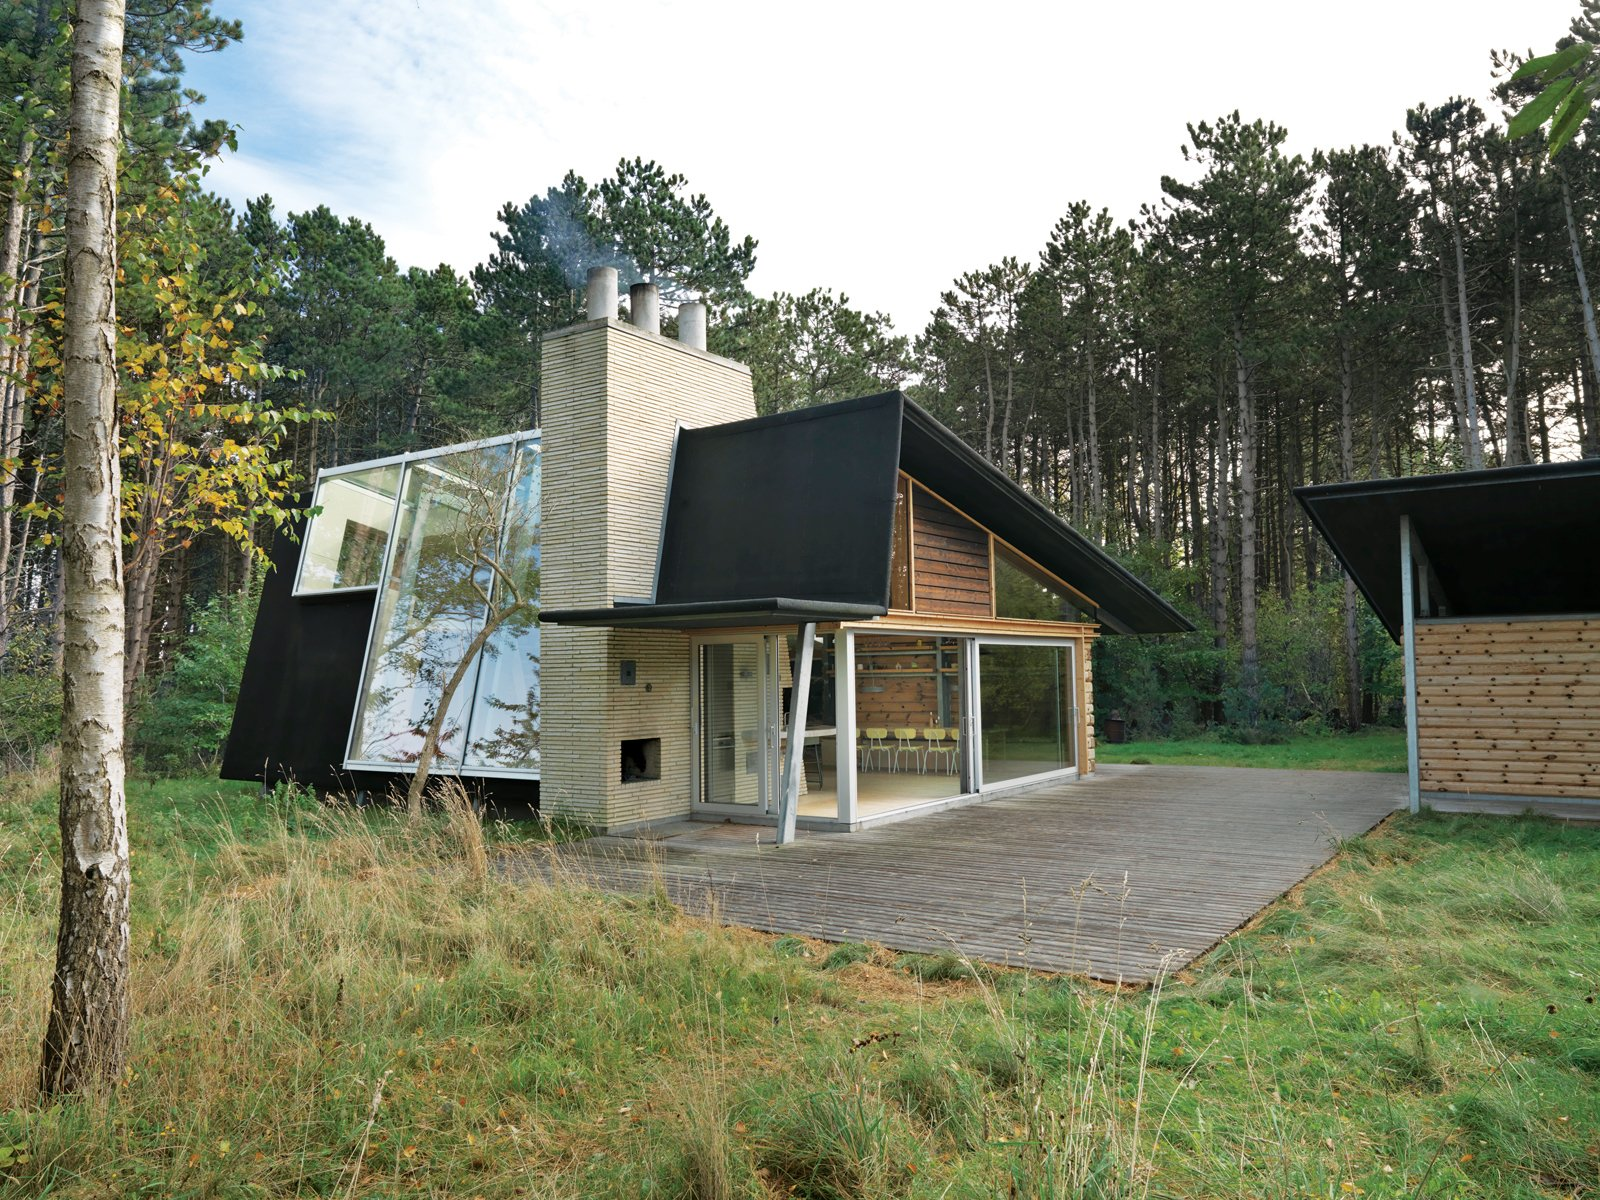 After living on and studying a woodsy acre of land in North Zealand, Denmark, architect Jesper Brask cleared a stand of pine trees and, from the timber, built a getaway open to its surroundings. The house, which Brask shares with his wife, Lene, and sons, Kristian, Jens, and Niels, is used mainly in summer, when the weather is optimal for throwing open the glass doors.